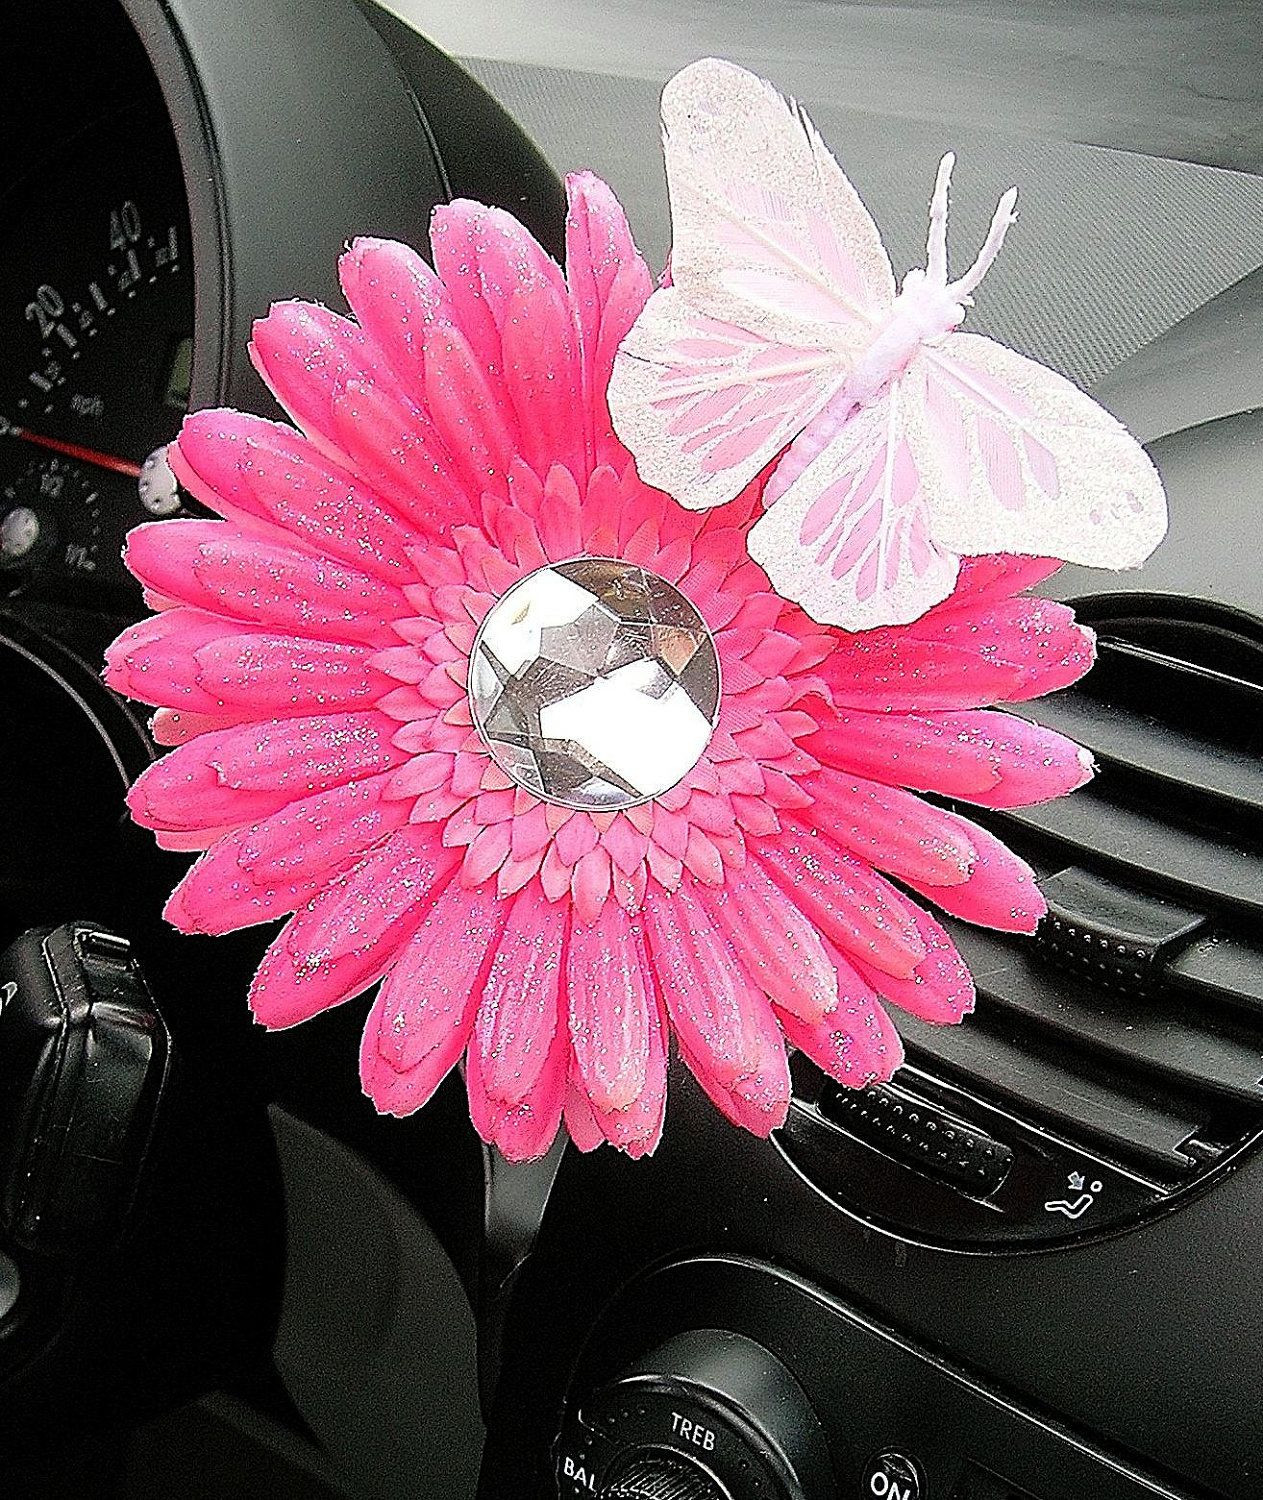 volkswagen flower vase of classic vw beetle flower vase diamond and blue bling by bling pertaining to vw beetle flower pink diamond bling daisy by blingmybug on etsy 12 50